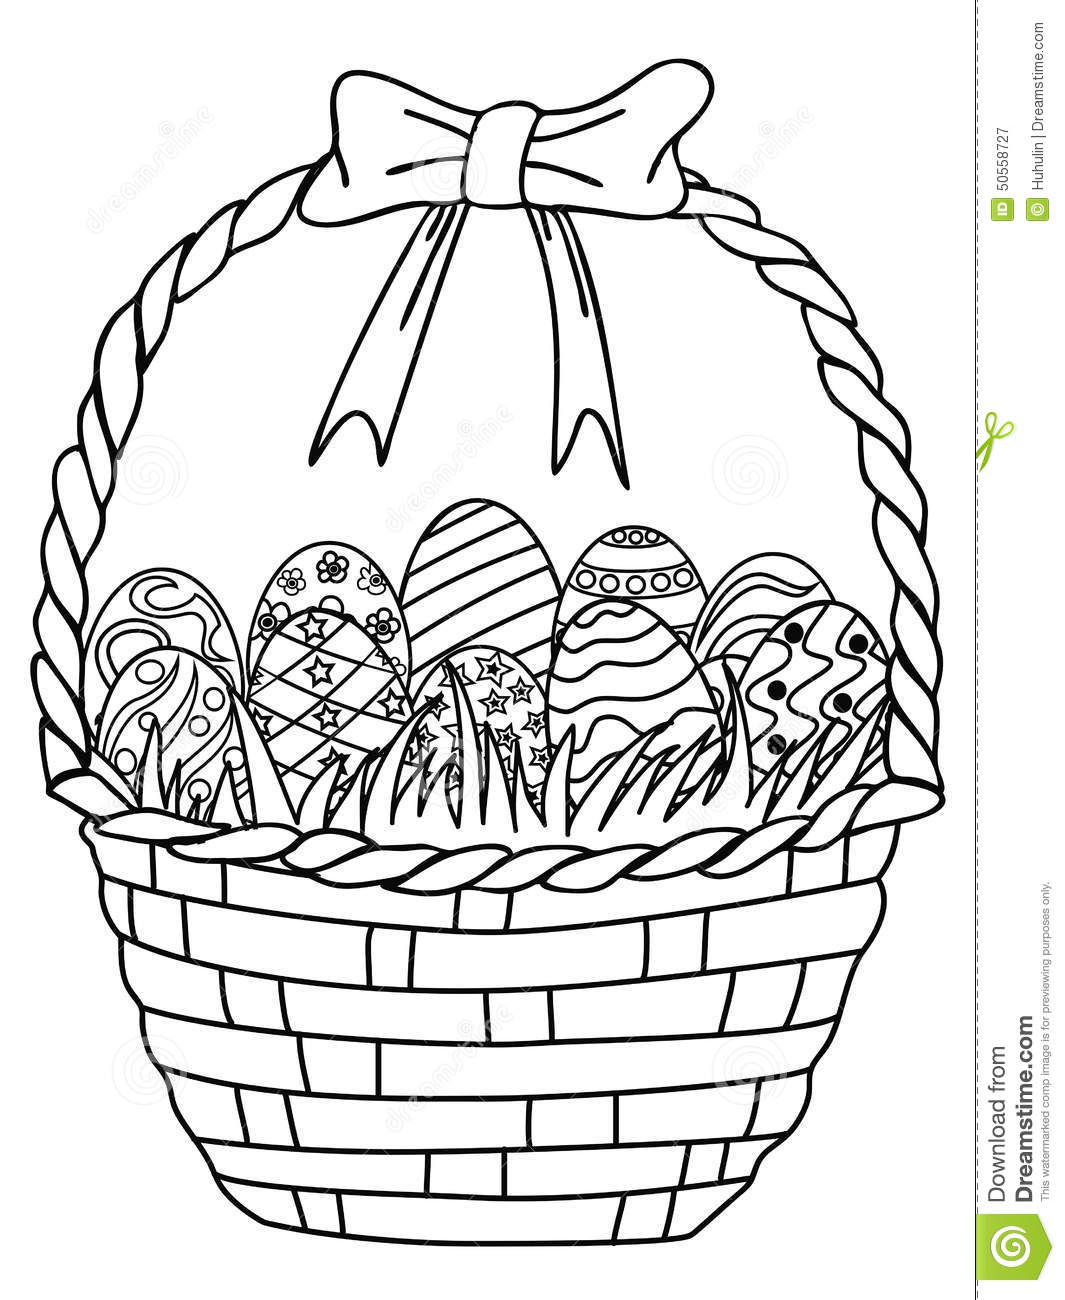 Basket Of Easter Eggs Outline Coloring Page Stock Vector